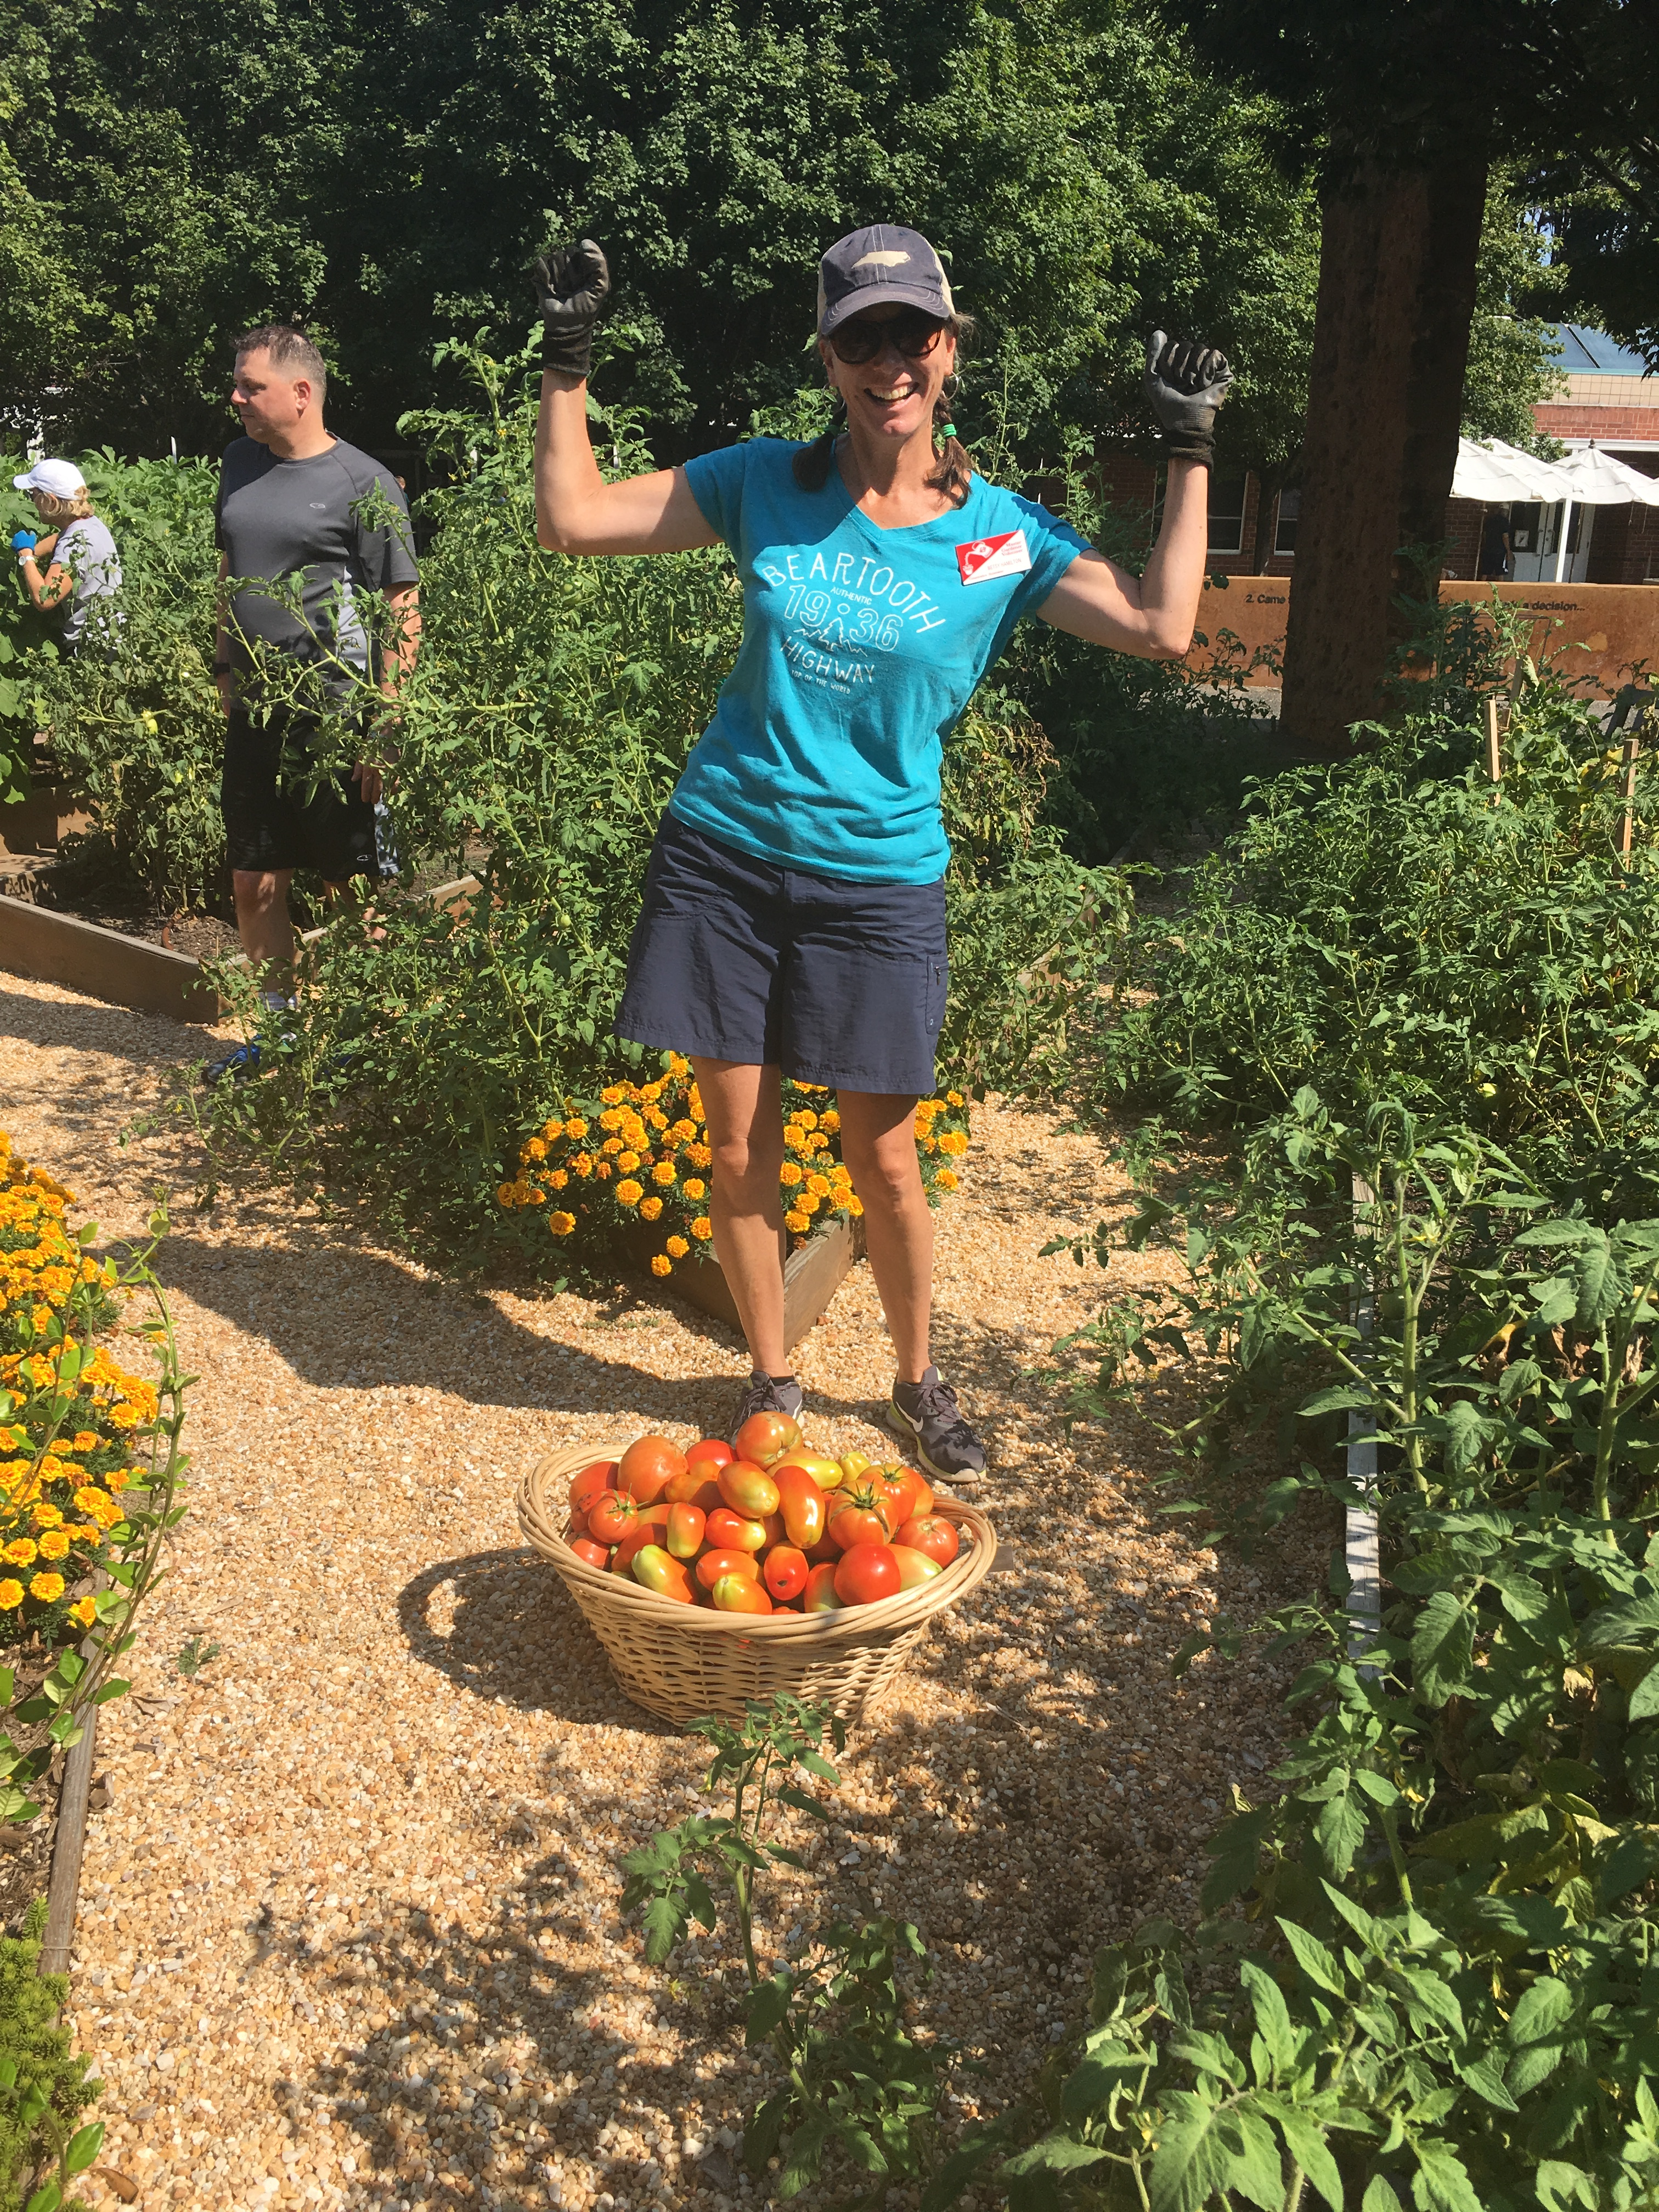 An Extension Master Gardener Volunteer poses excitedly in front of a basket of tomatoes.